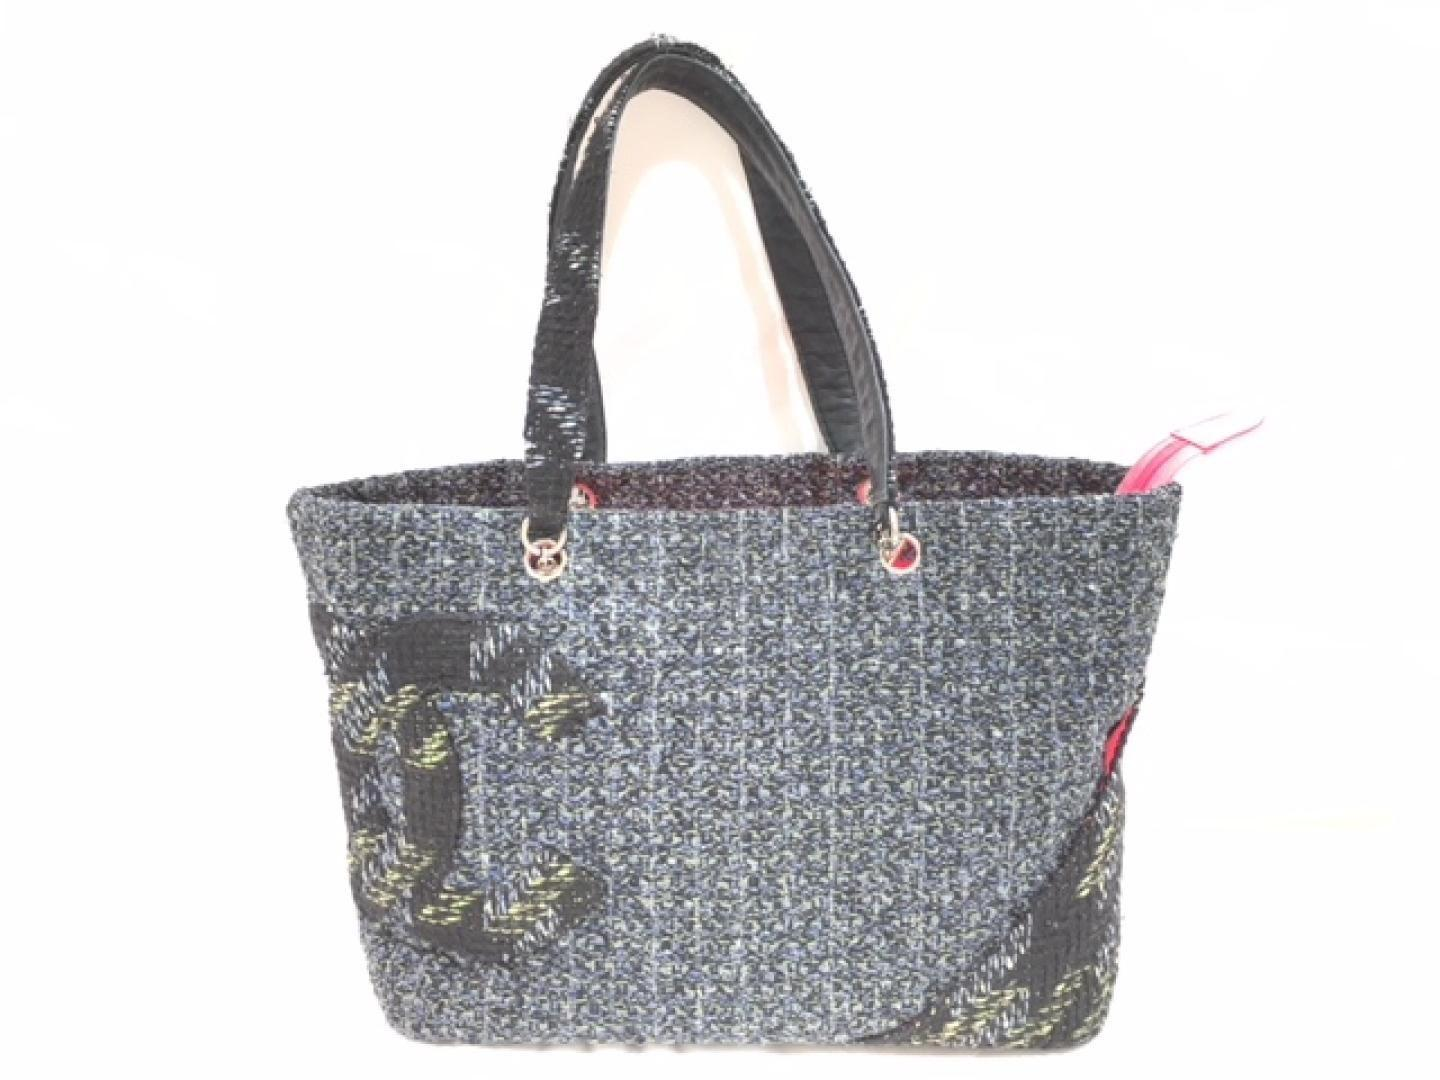 53b0cba0723b ... Lyst - Chanel Cambonline Large Tote Tote Bag Grey Tweed in G another  chance 17784 a2929 ...